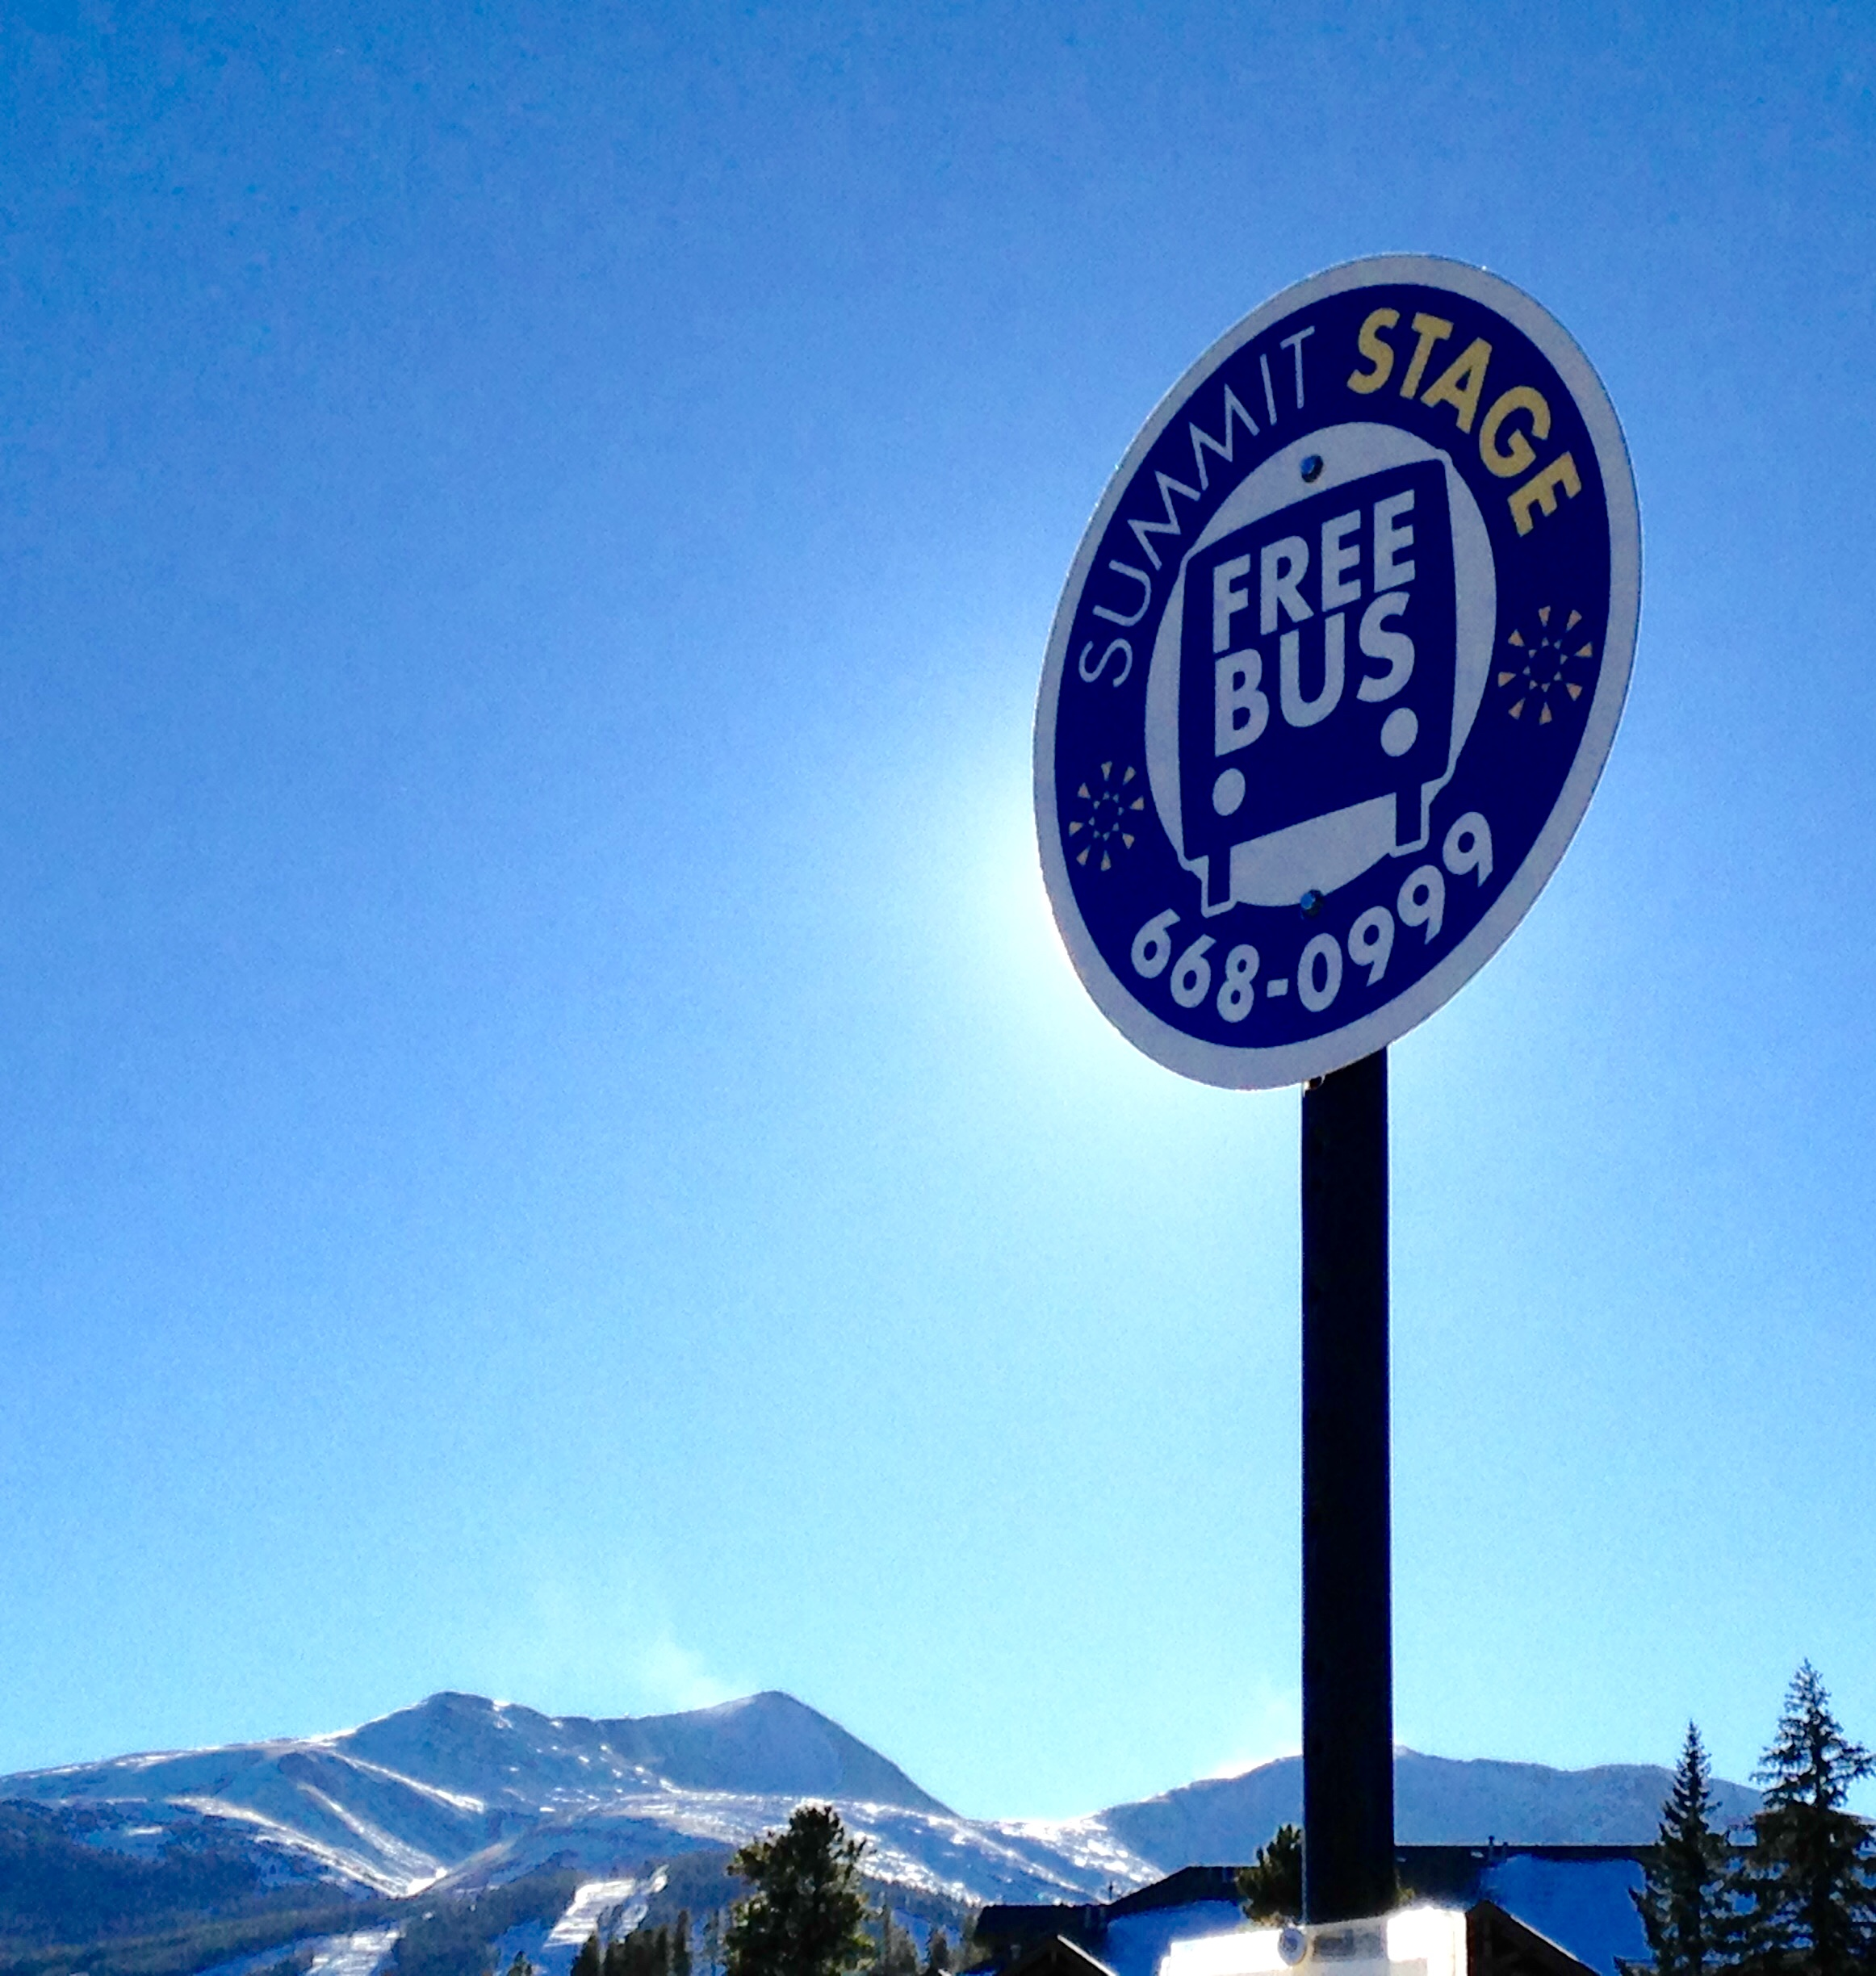 Photo of a Summit Stage sign at a bus stop.